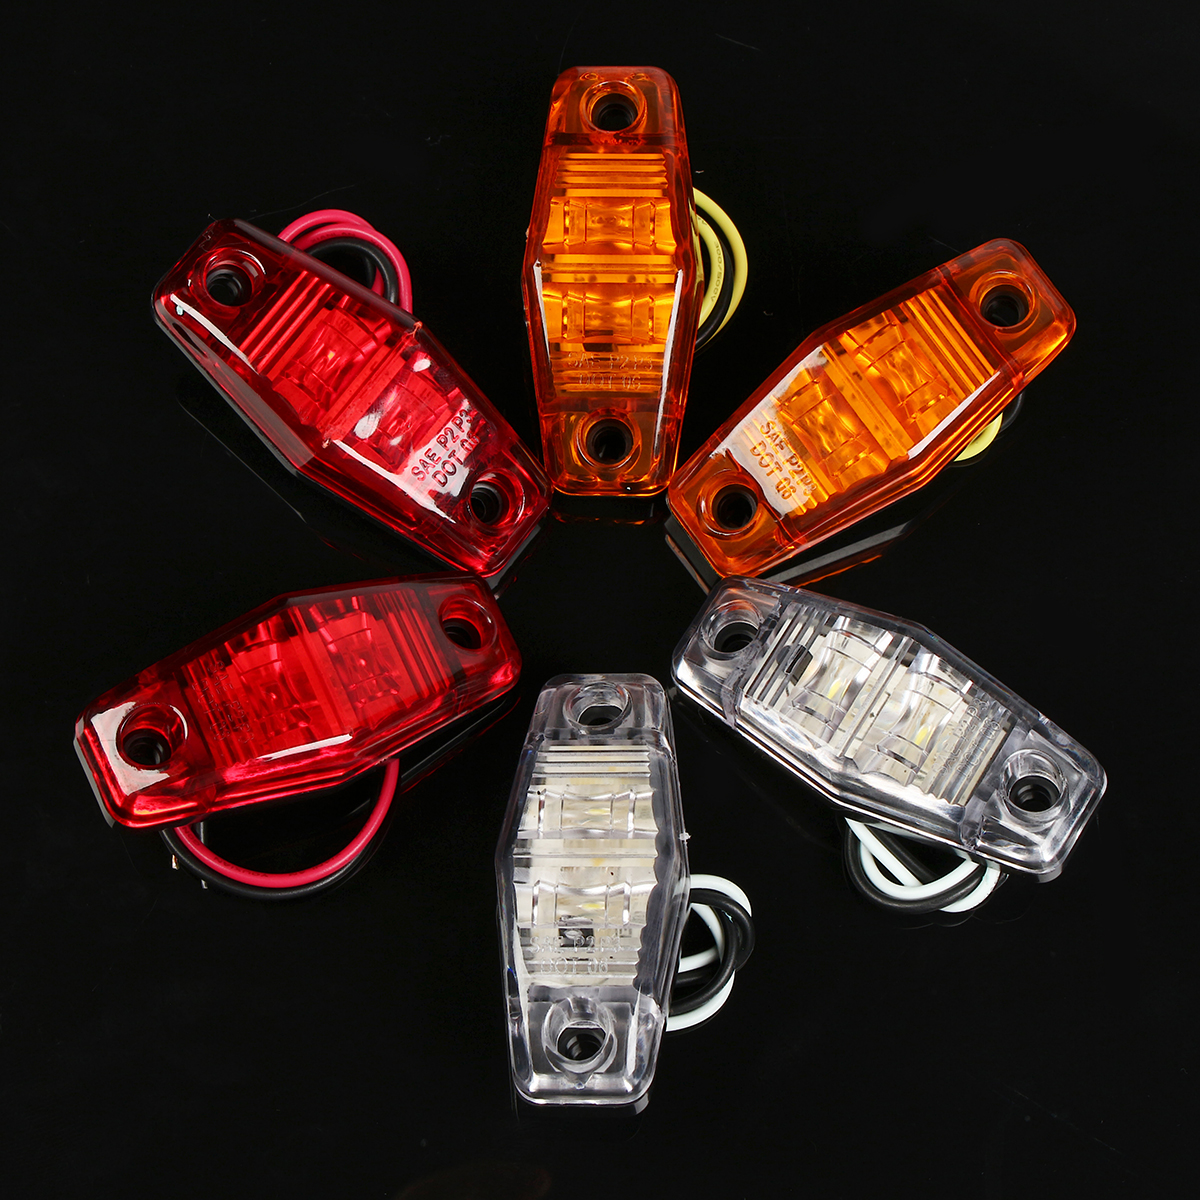 LED Side Marker Lights Indicator Lamps 10-30V Amber/Red/White 1PCS for Car Truck Trailer